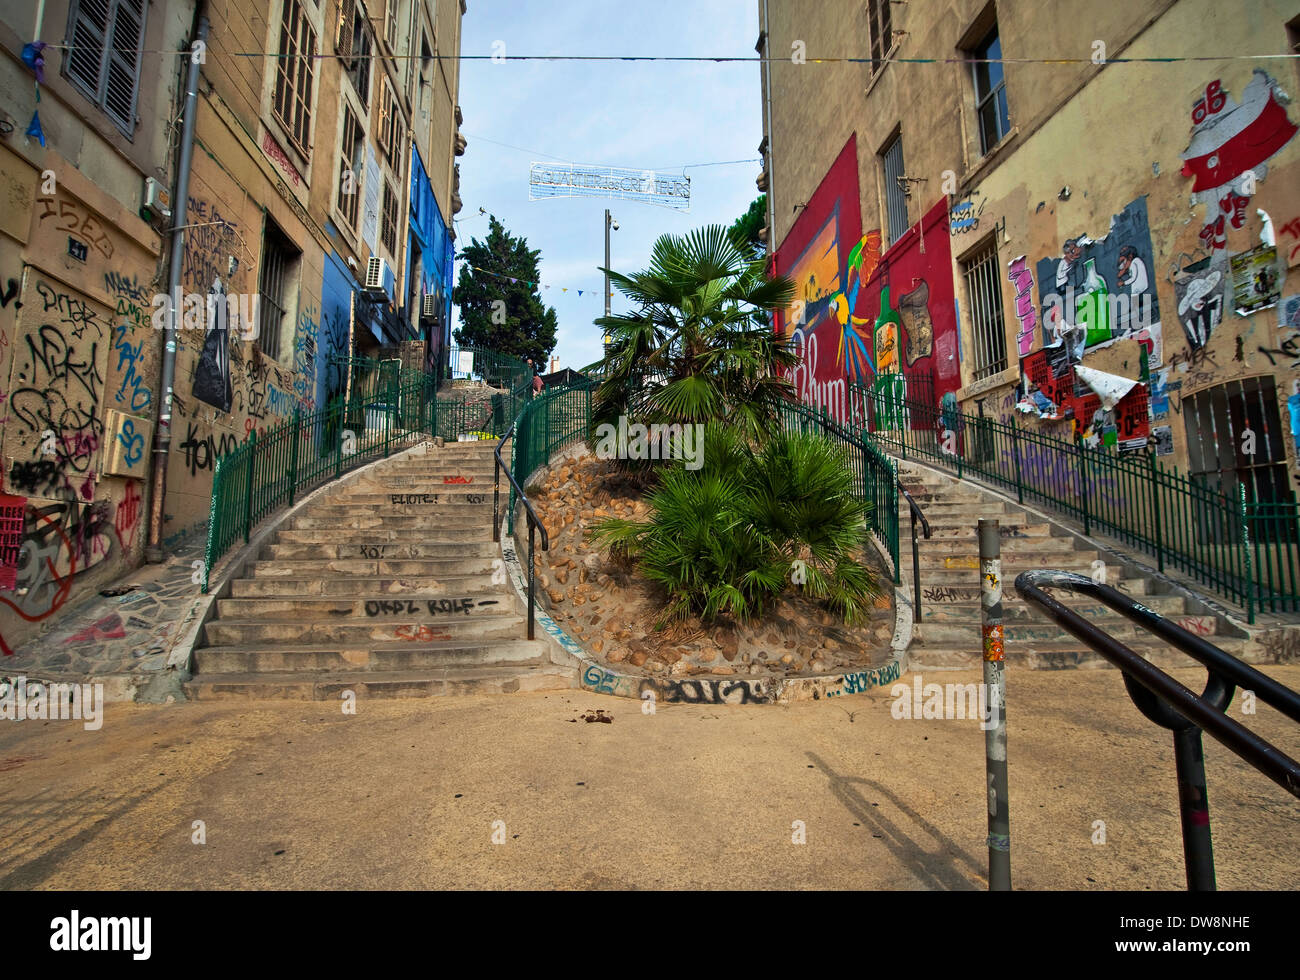 The graffiti-filled walls on the steps leading up to the Cours Julien section of Marseilles, France - Stock Image